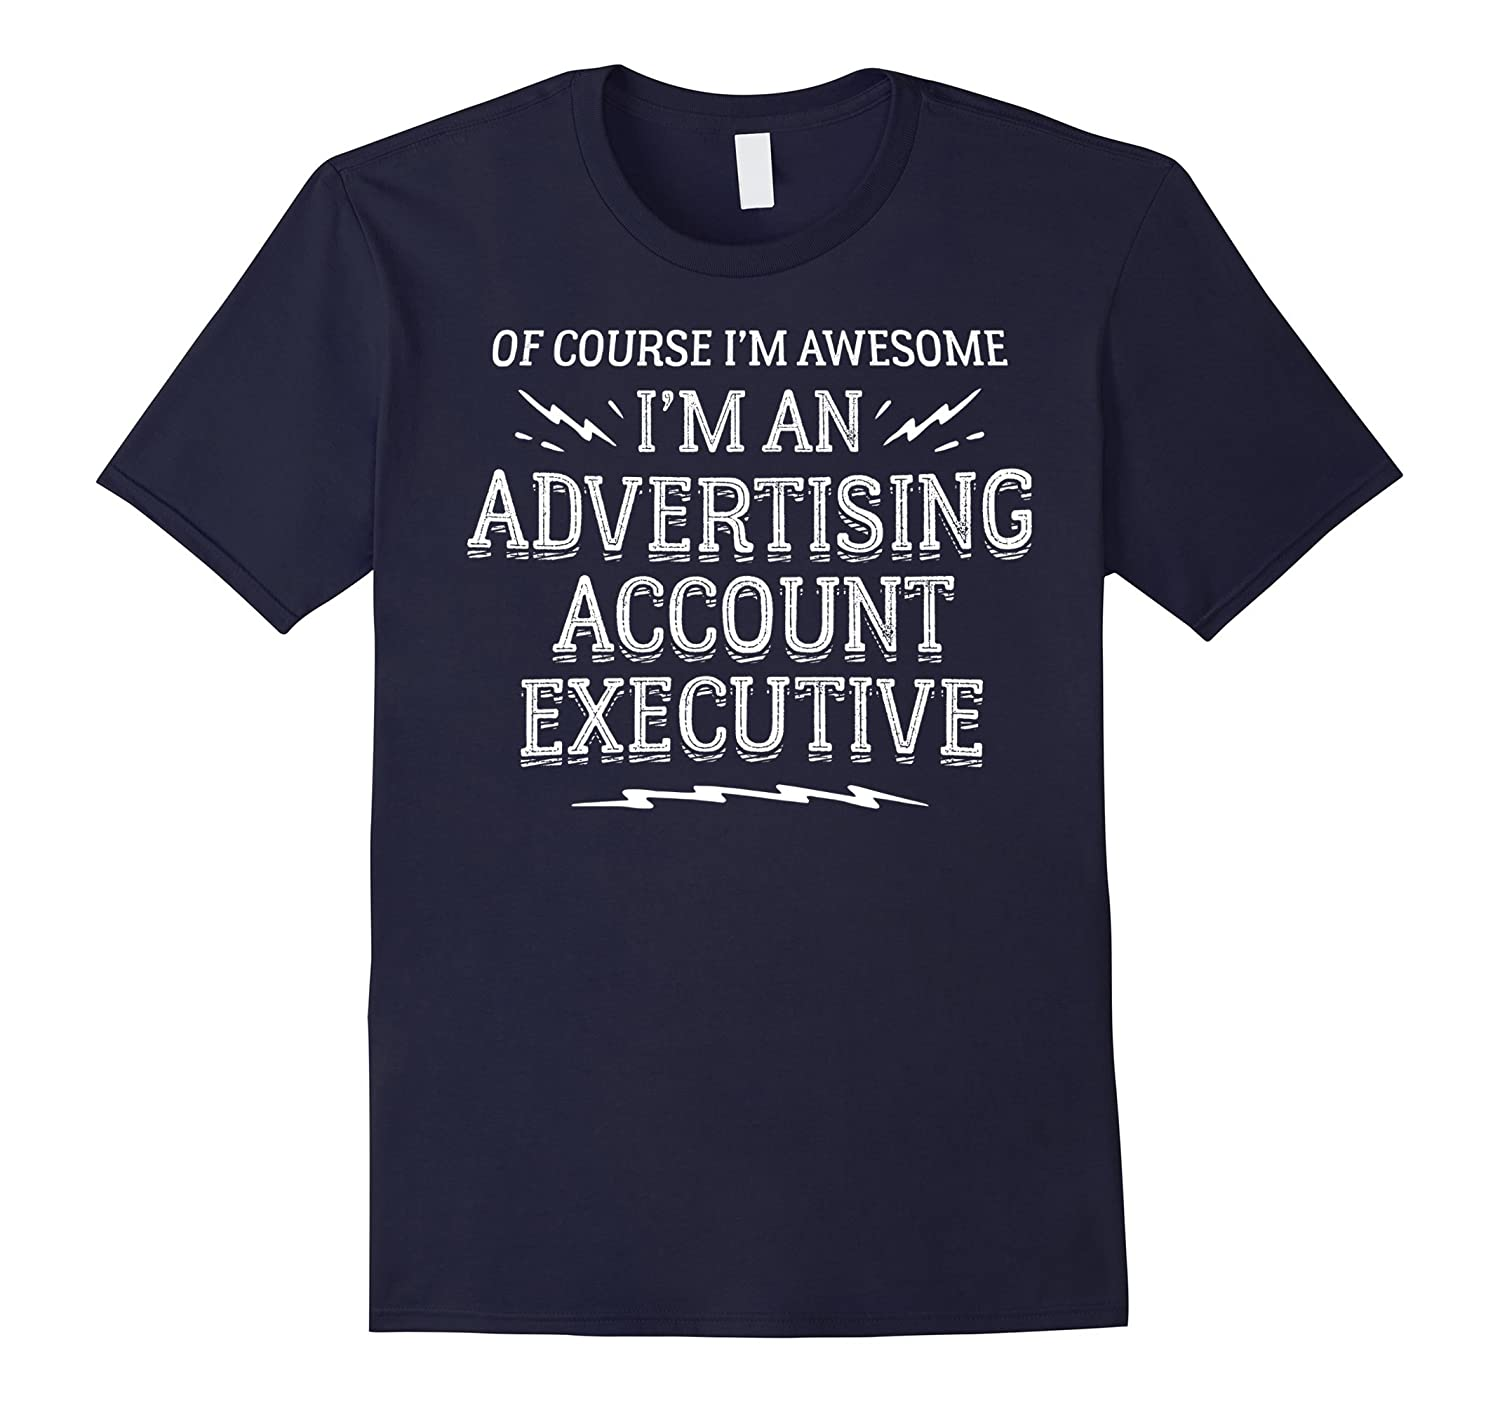 Advertising Account Executive Work T-Shirt - Of Course Im A-TJ